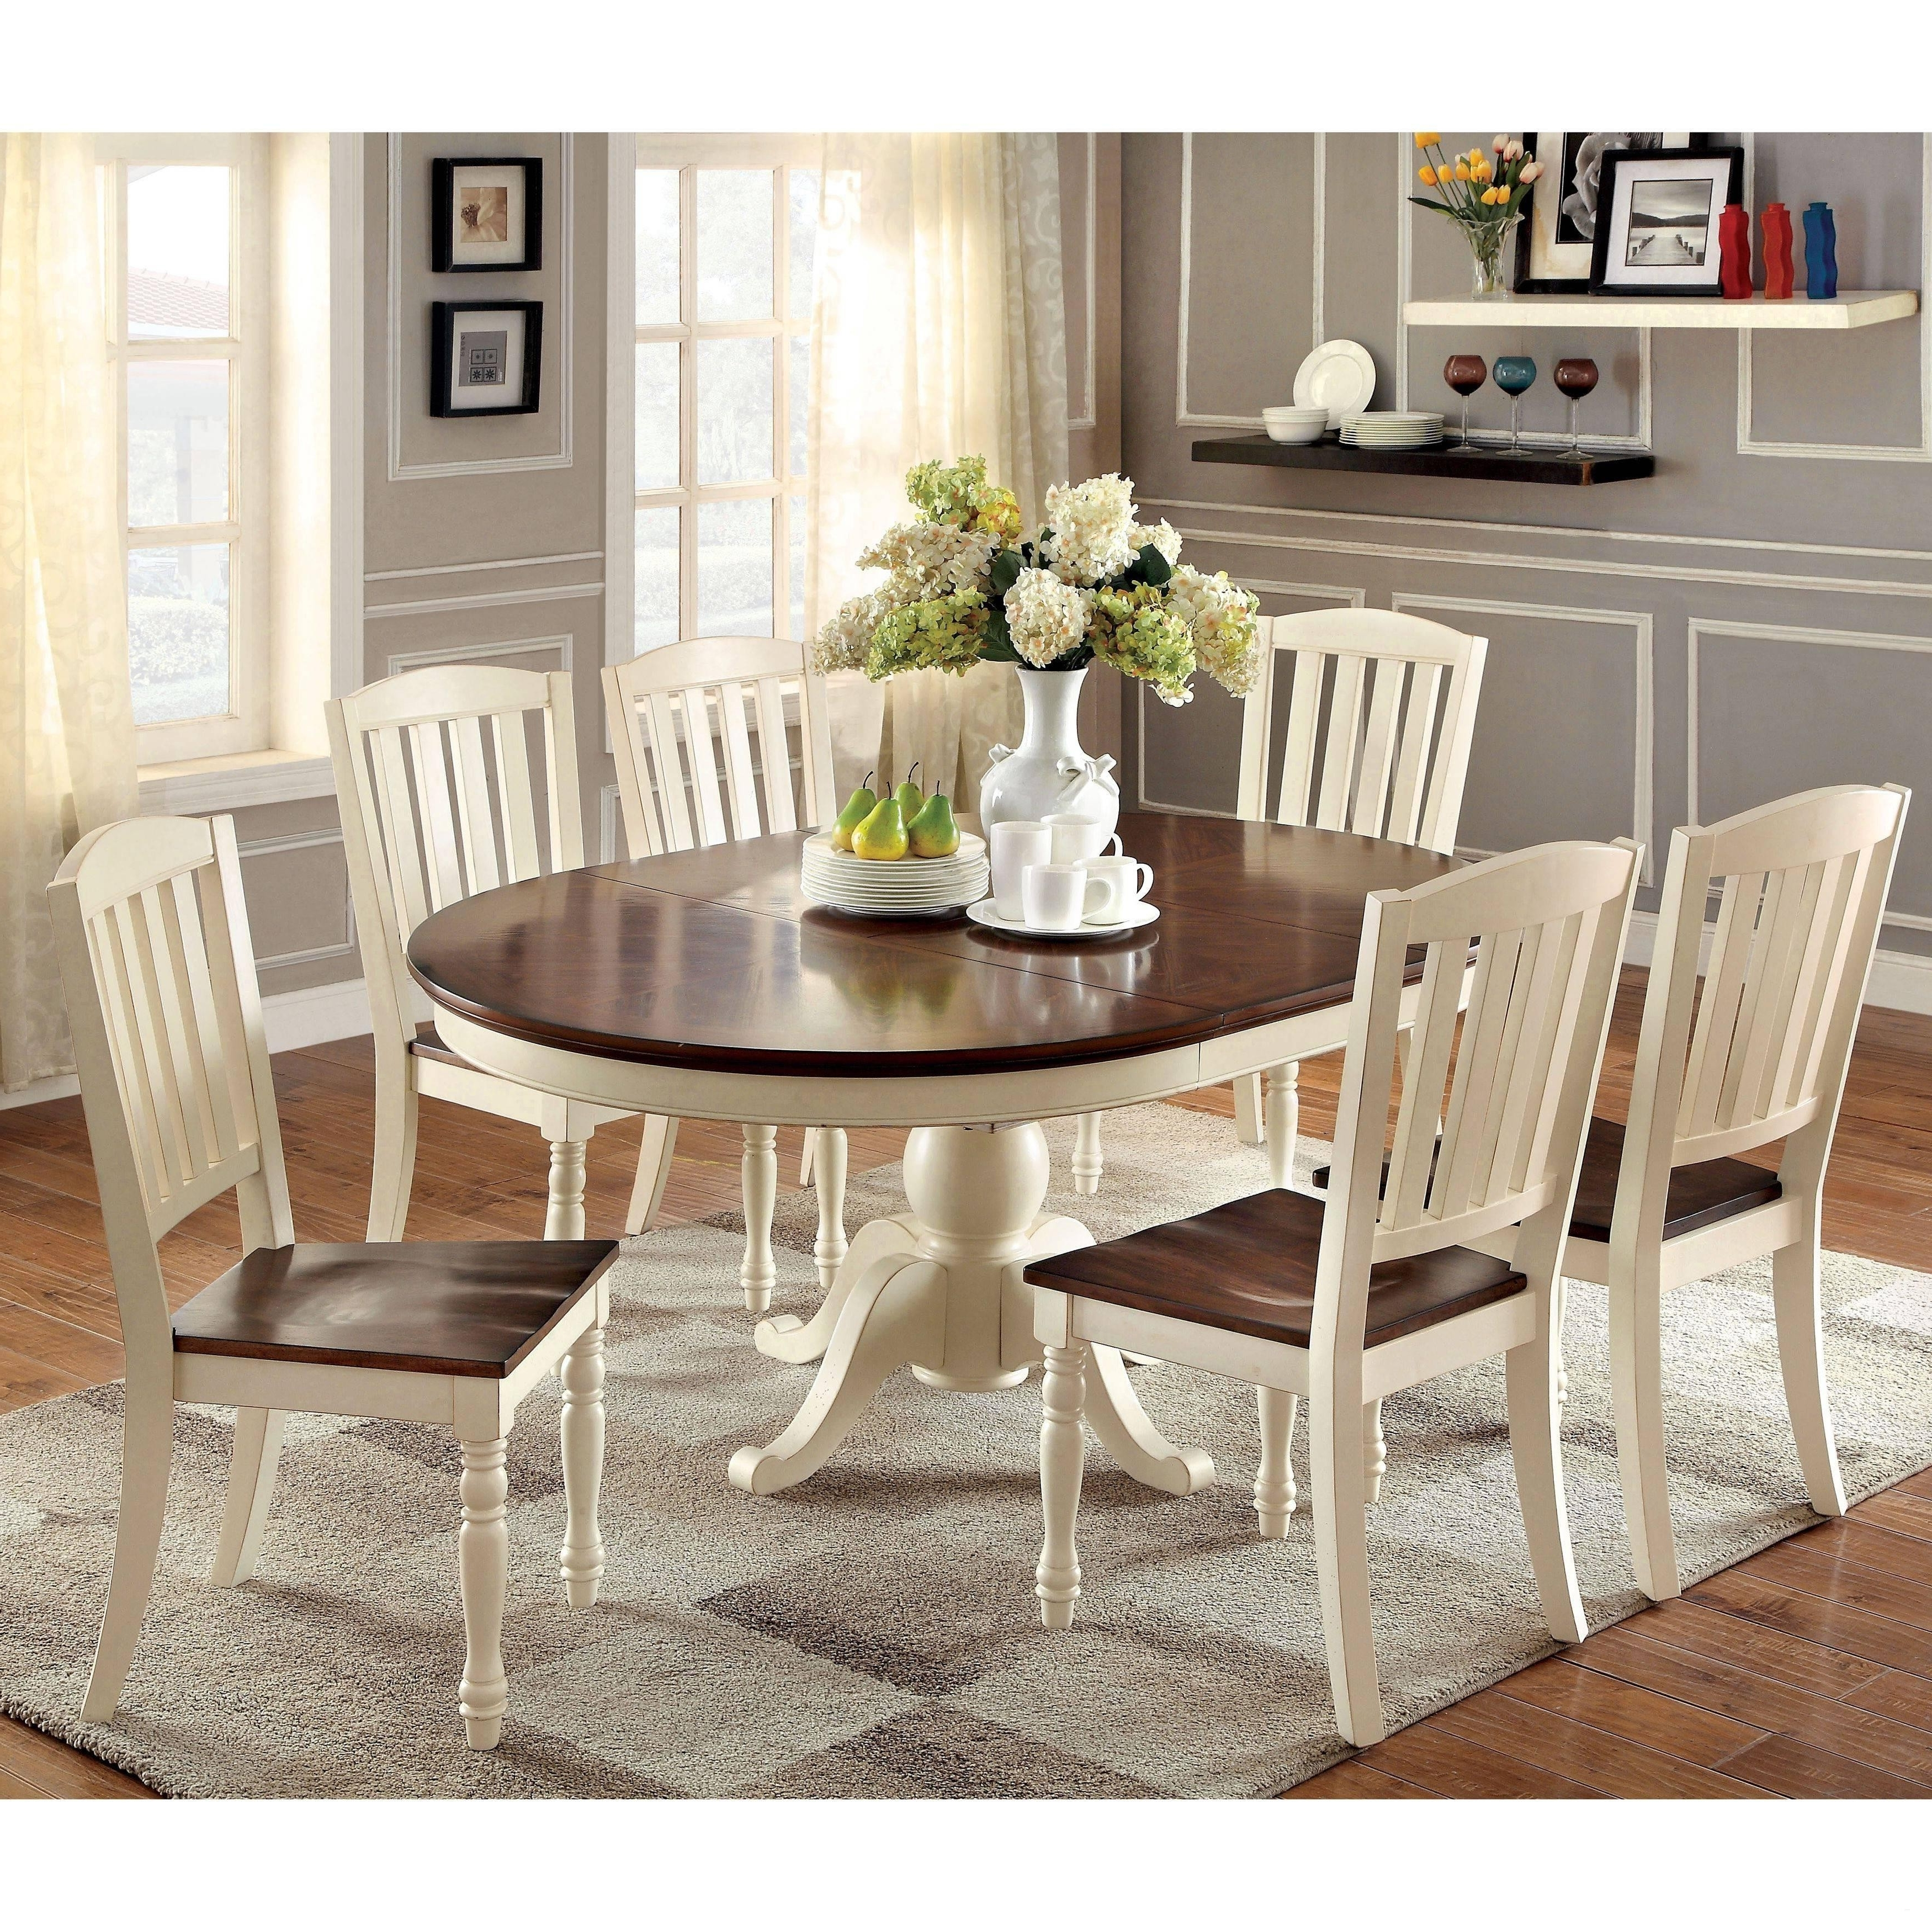 Famous Kitchen Dining Sets Regarding Round Dining Table For 10 Inspirational 42 Inspirational White Round (View 12 of 25)